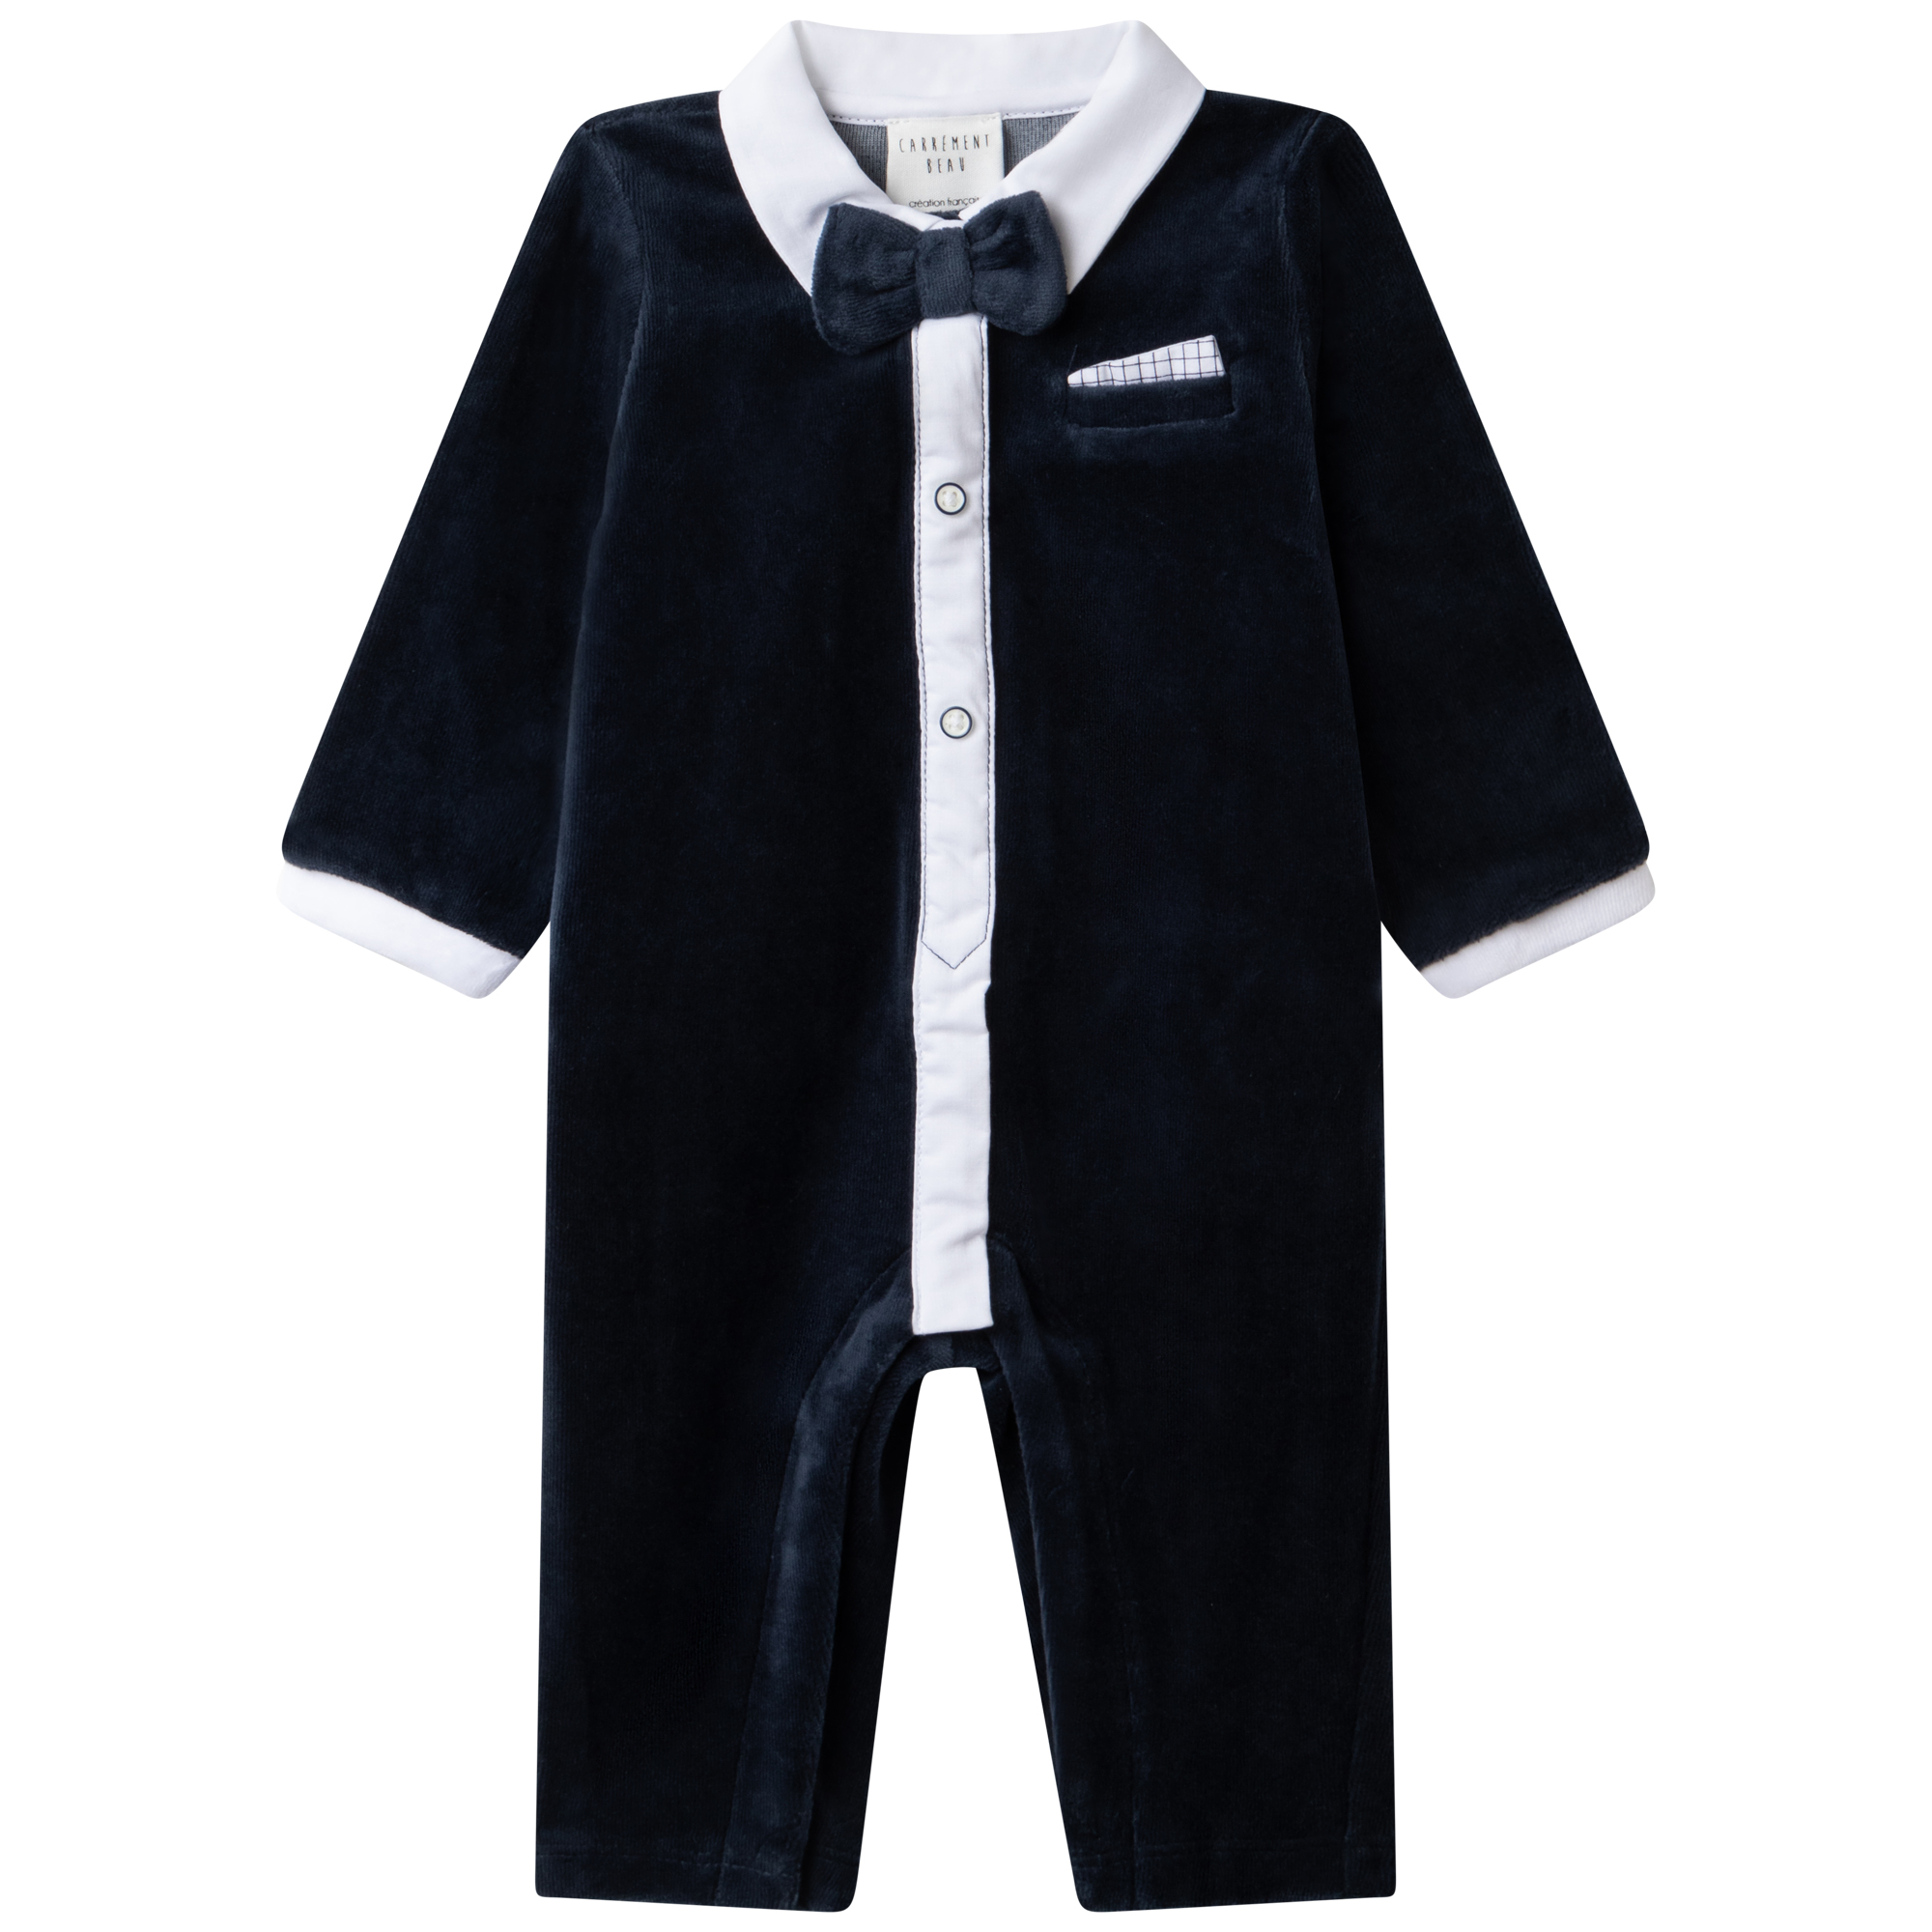 CEREMONY SHORT ALL IN ONE CARREMENT BEAU for BOY